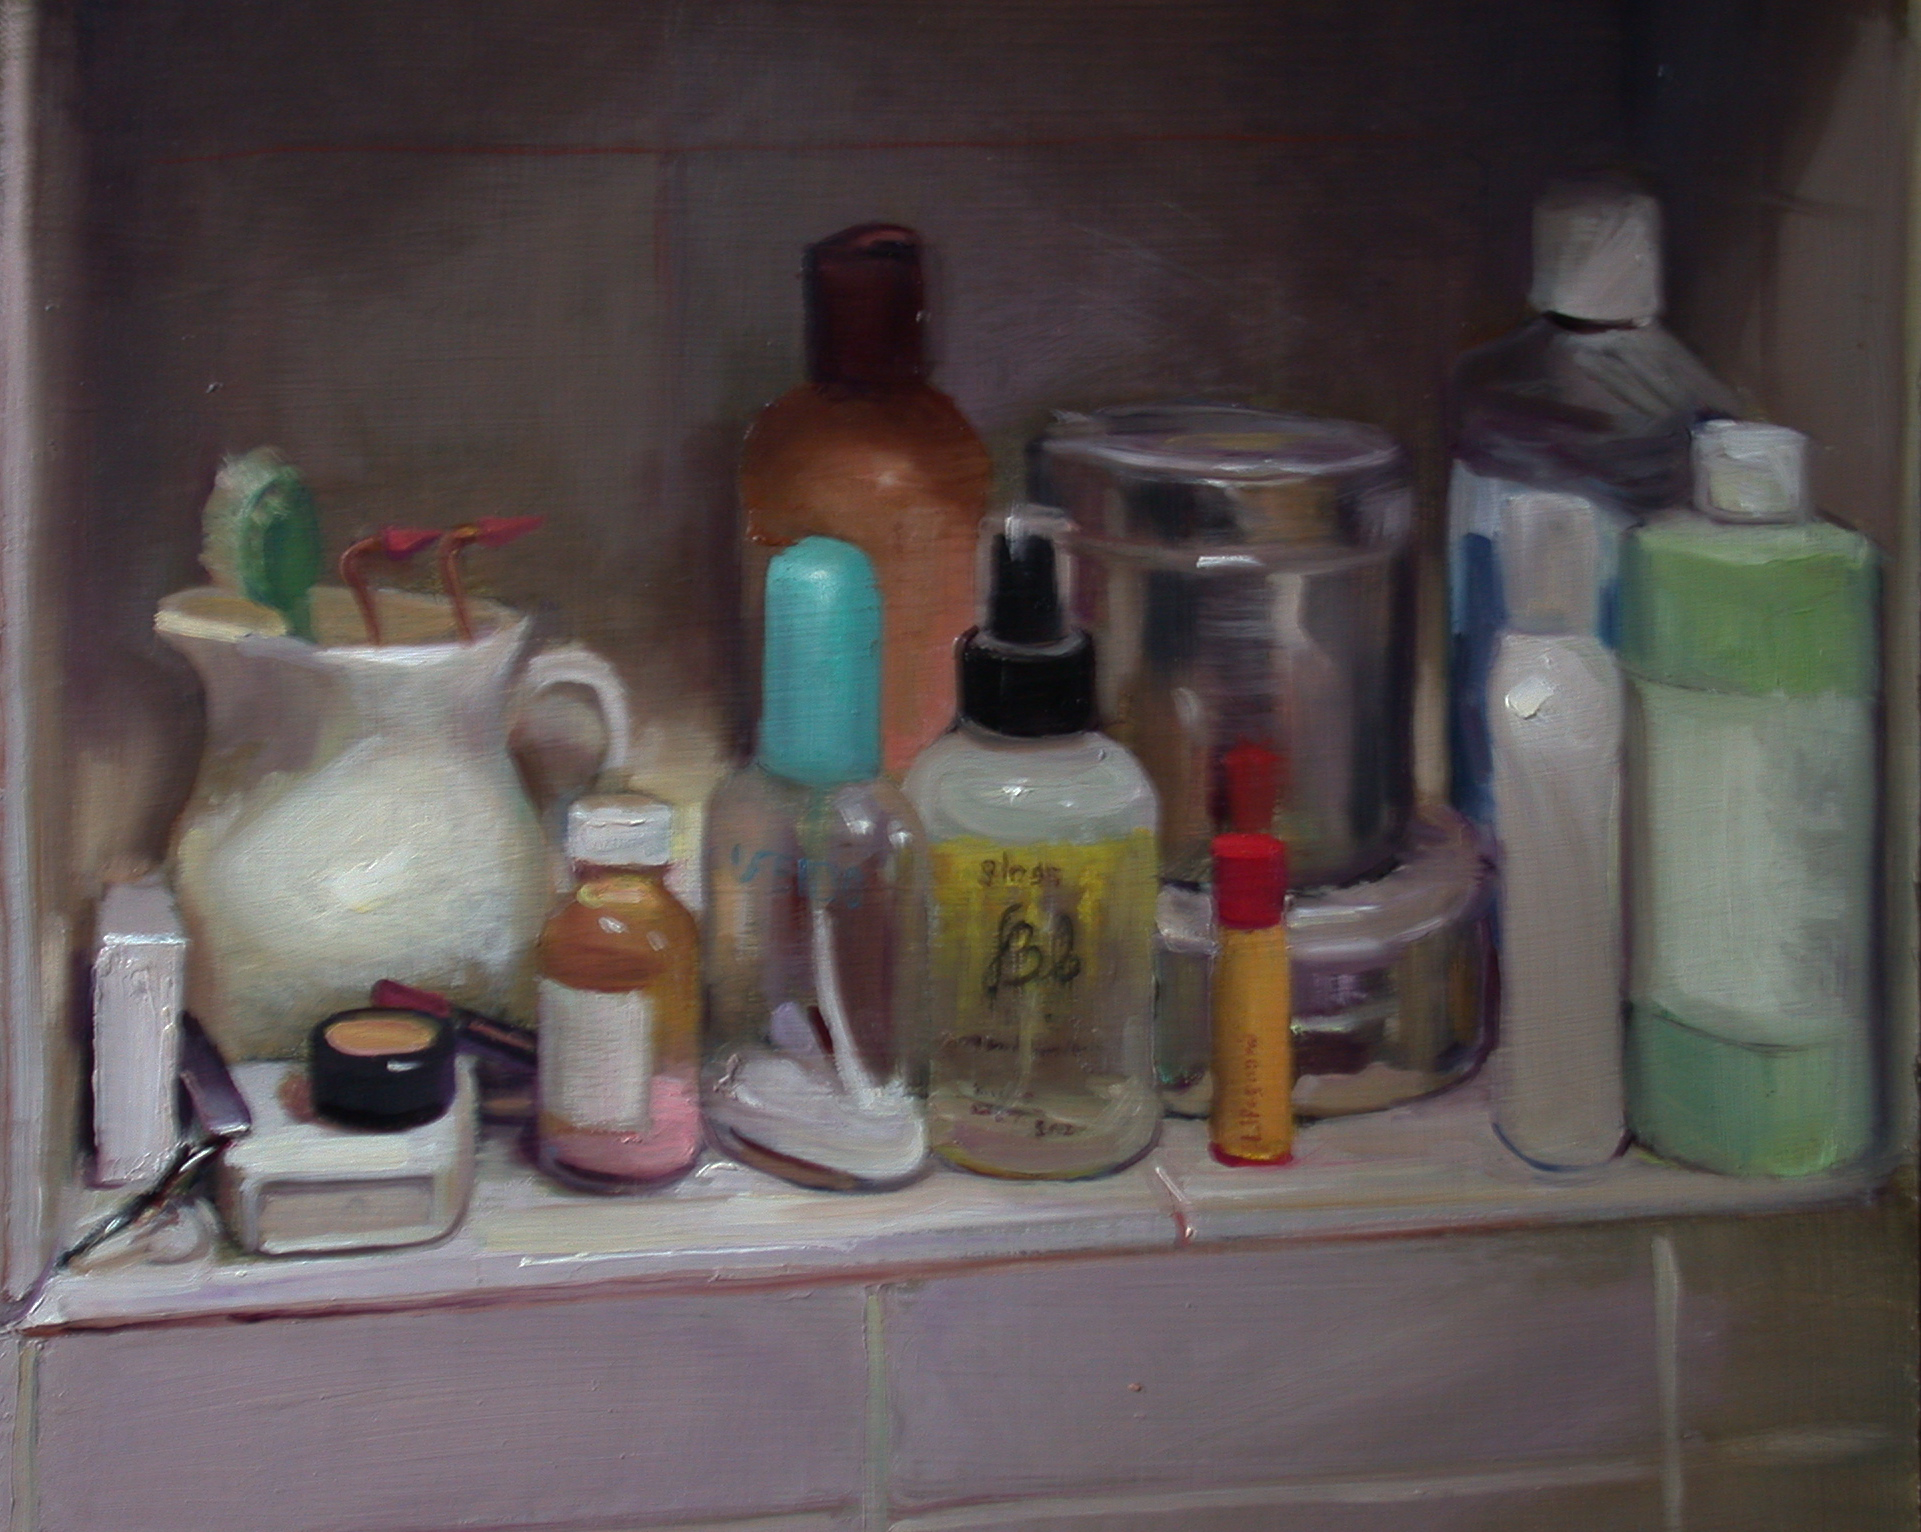 Bathroom shelf.jpg